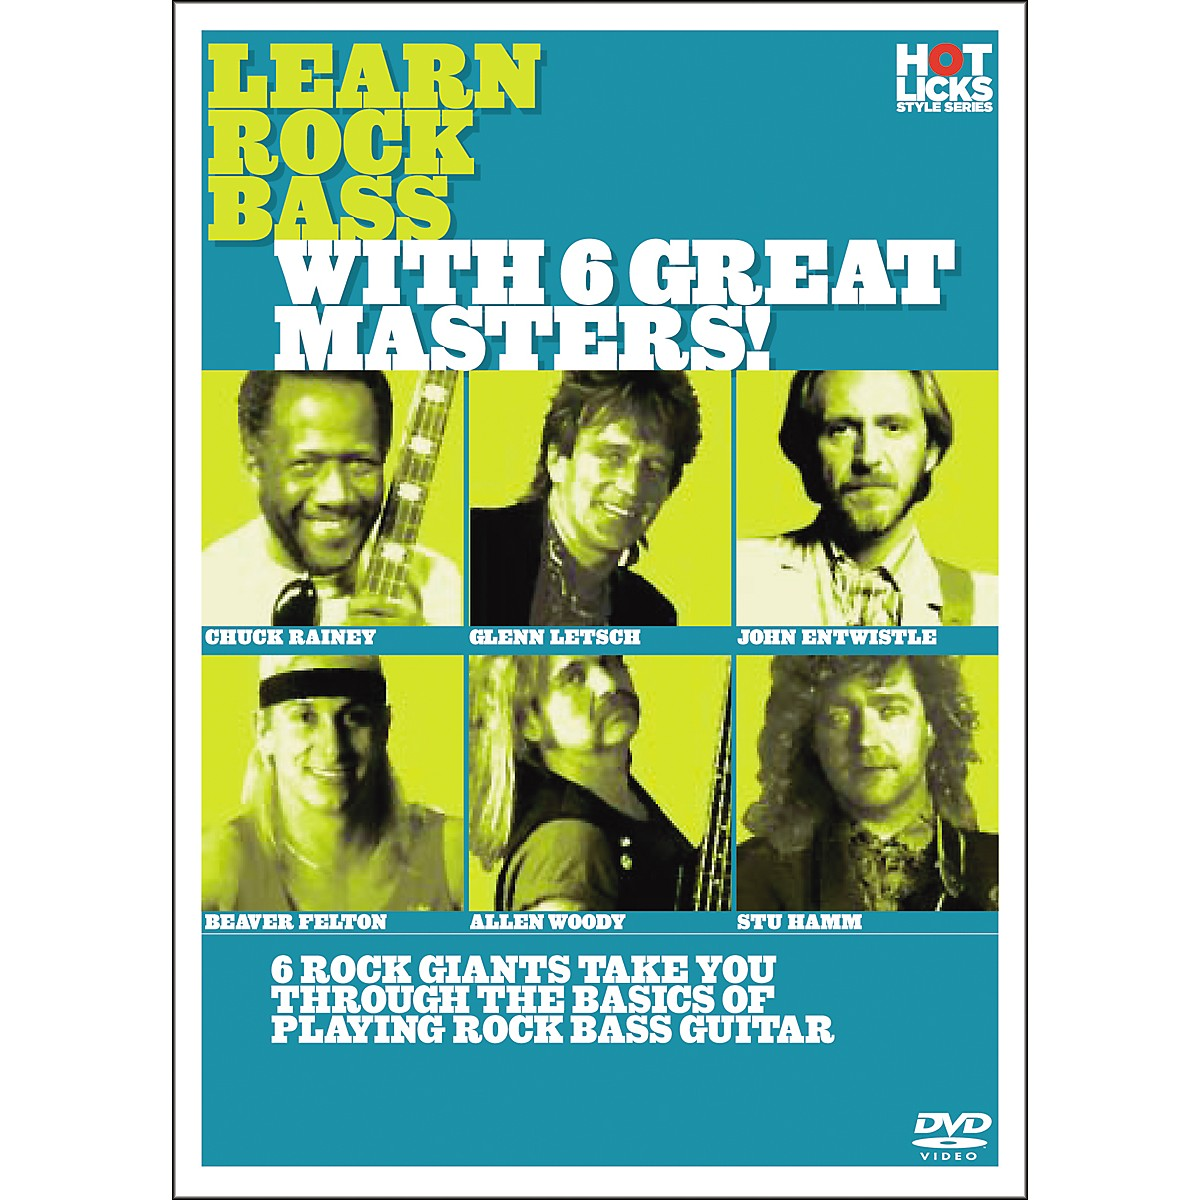 Hot Licks Learn Rock Bass with 6 Great Masters DVD